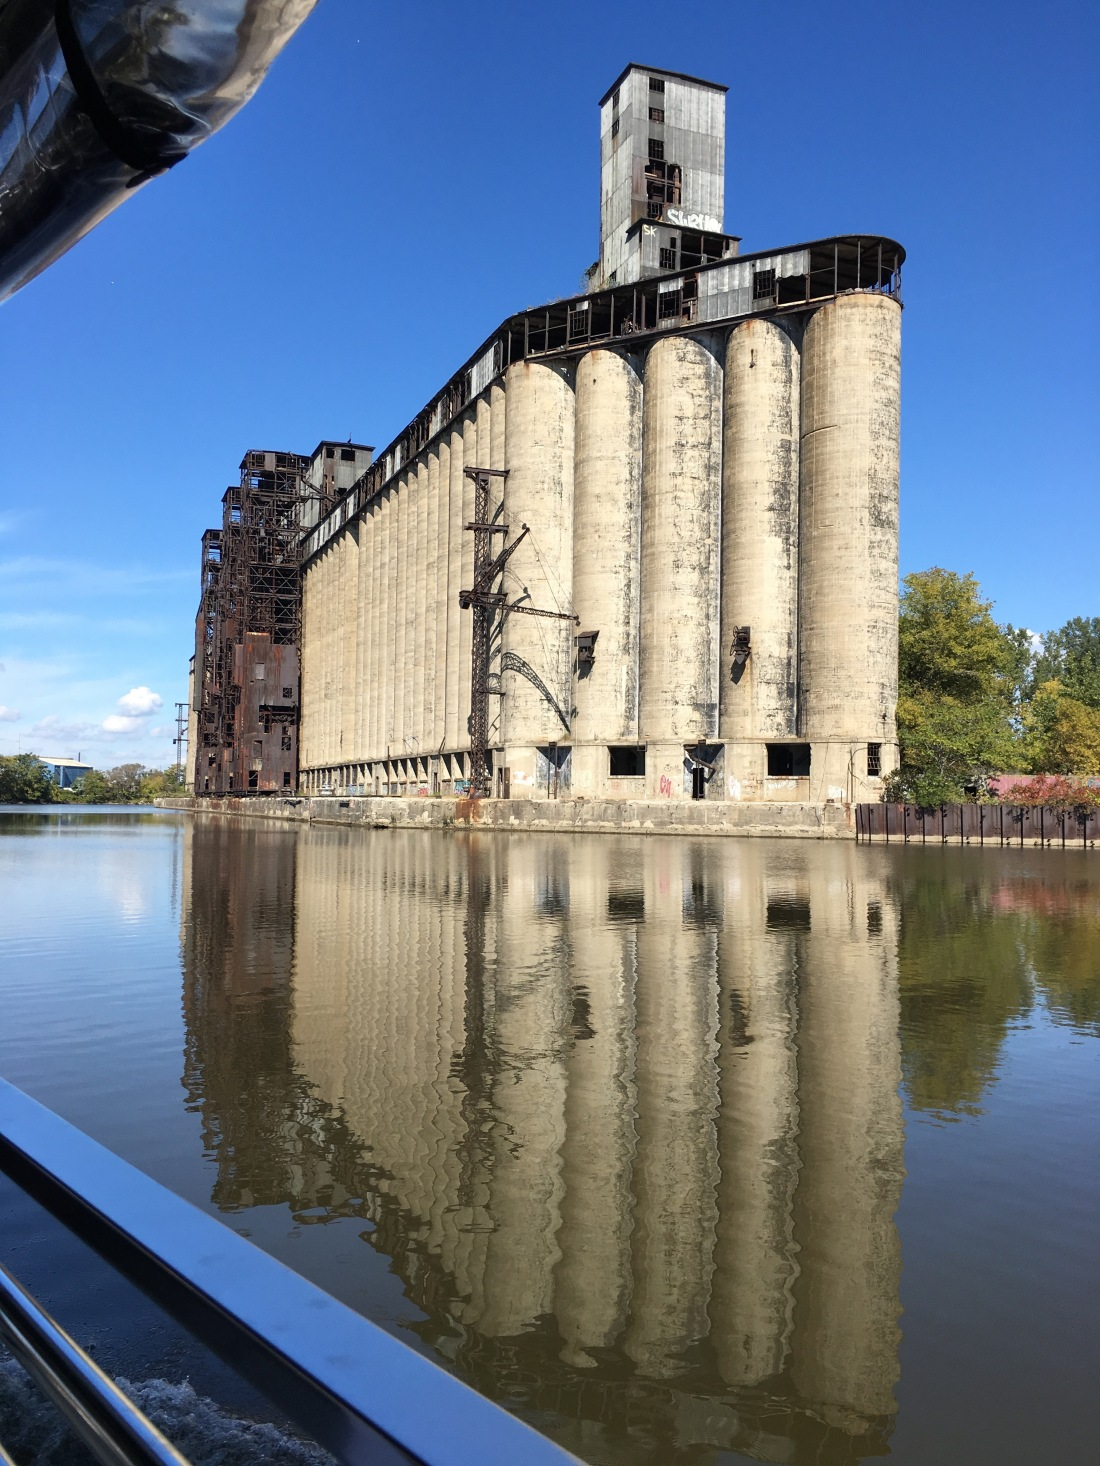 In the Buffalo River and City Ship Canal viewing the amazing silos...